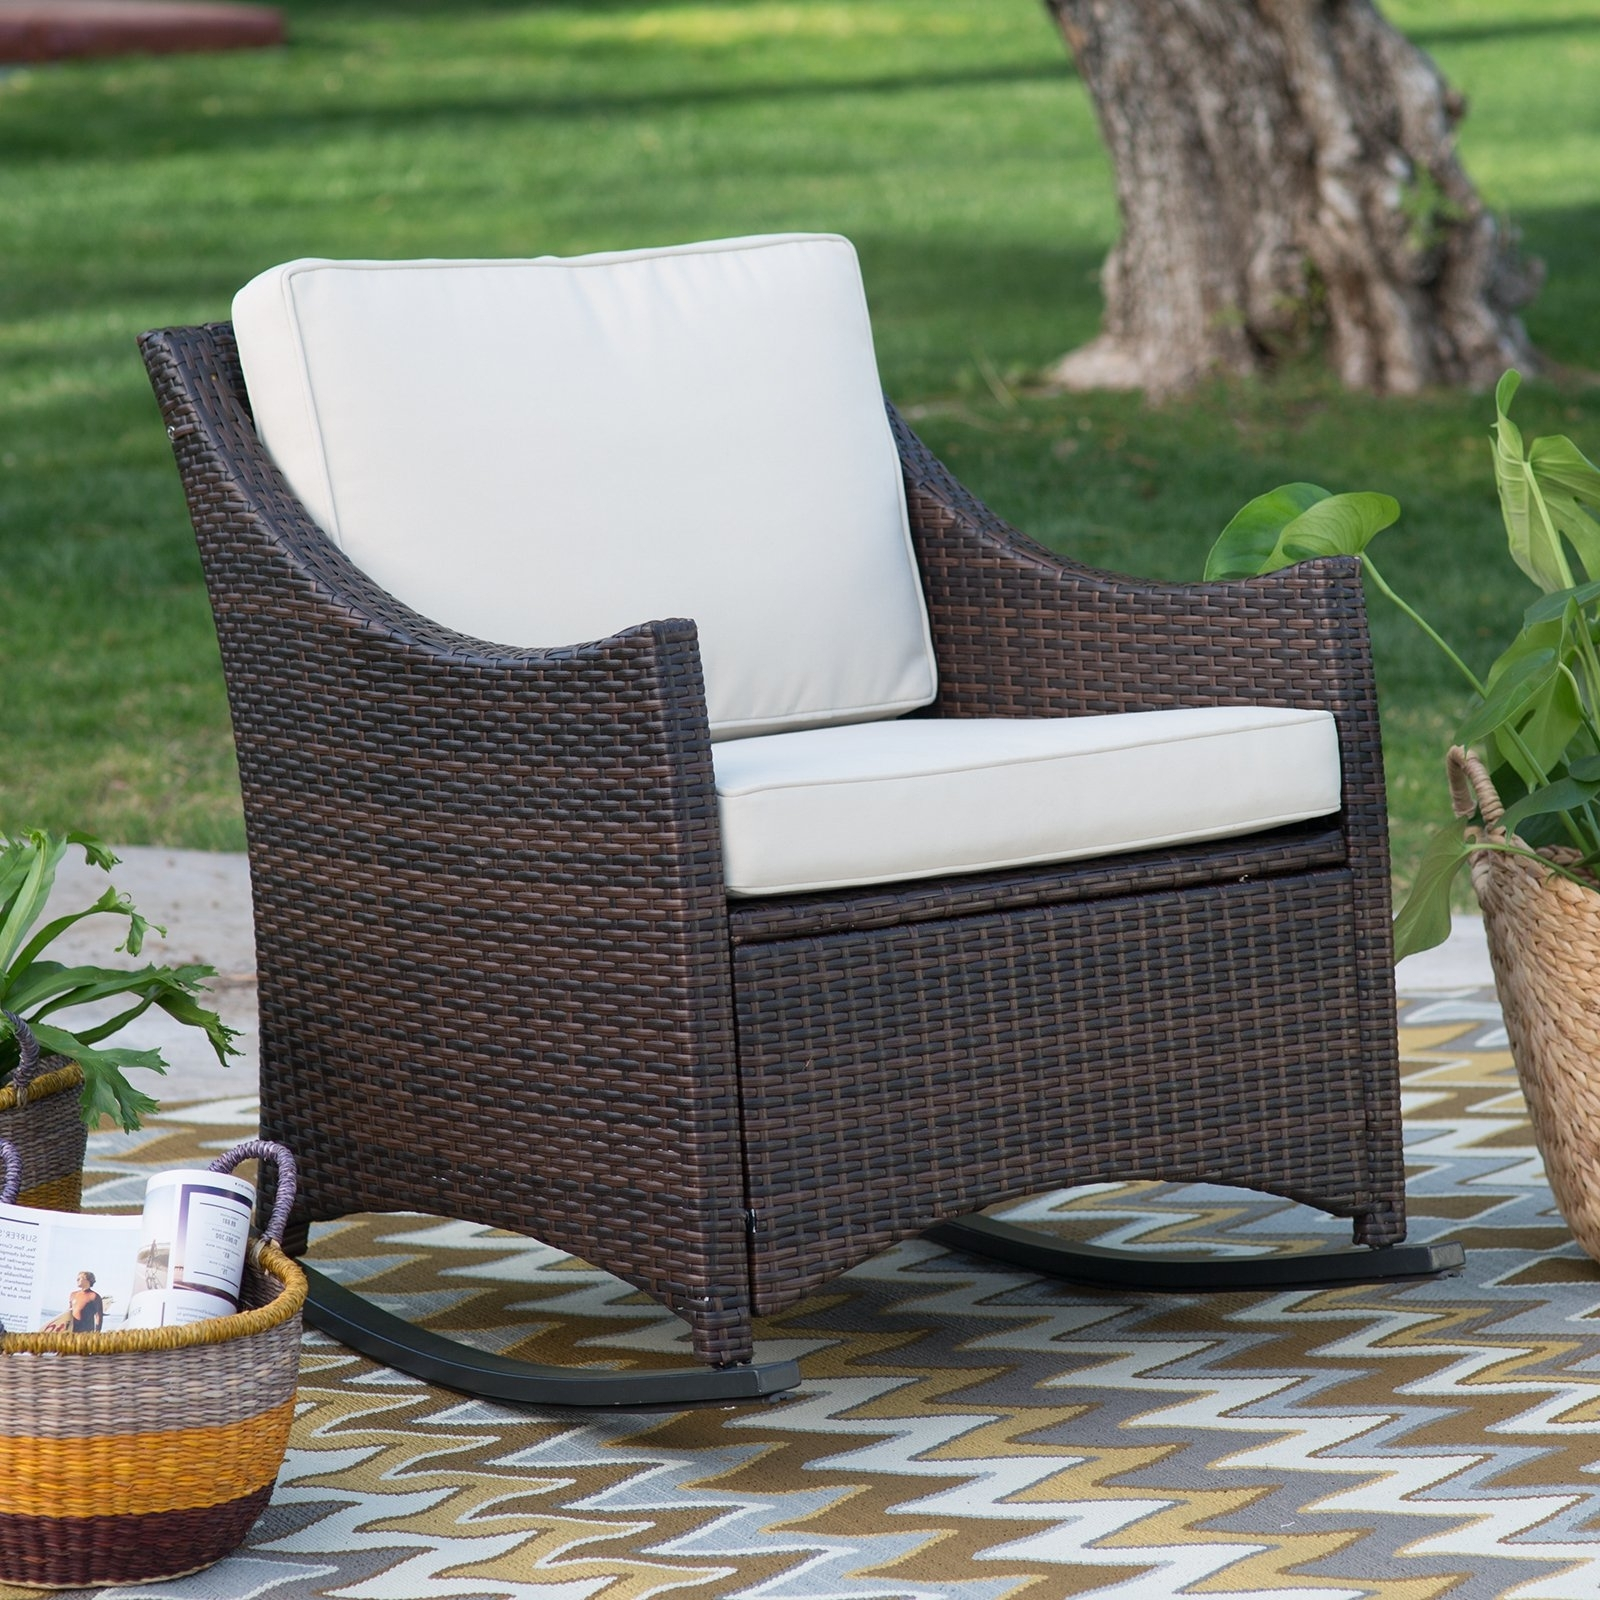 Wicker Rocking Chairs For Outdoors In Recent Chair (View 10 of 15)